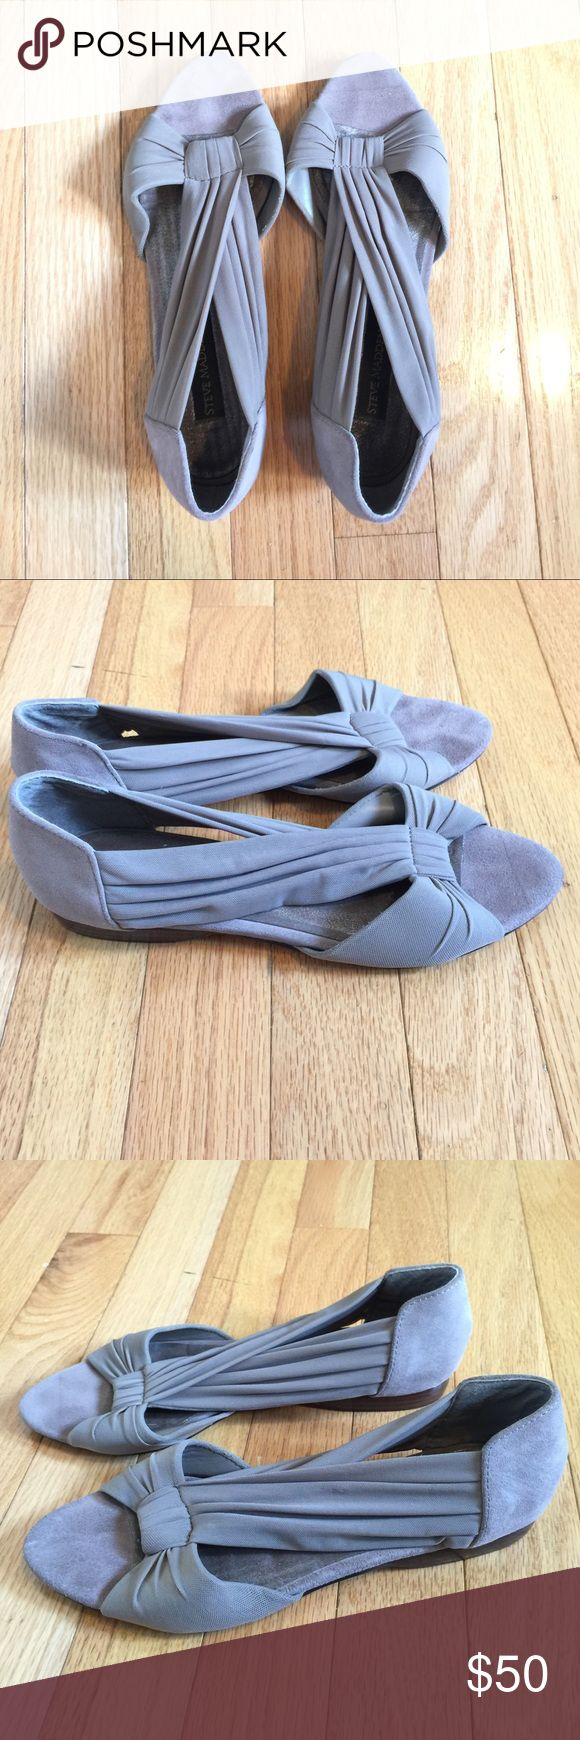 STEVE MADDEN LUXE gray flats with gauze (7) ✨ STEVE MADDEN LUXE gray flats with gauze upper. Super comfortable and chic! (7) ✨ Steve Madden Shoes Flats & Loafers